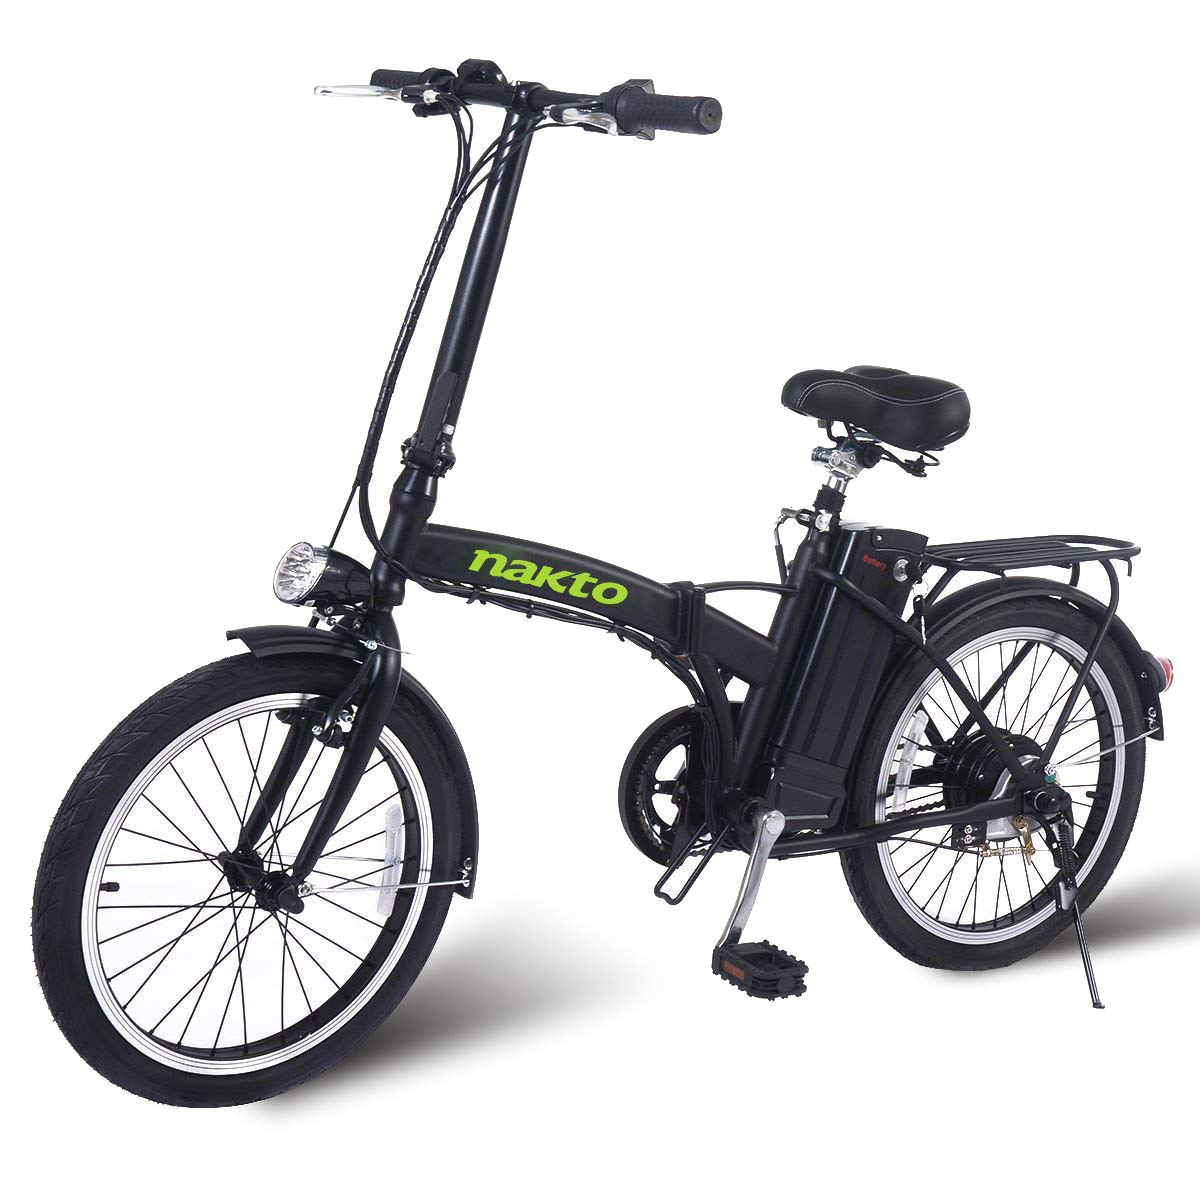 Electric Sports Bike >> Nakto 20 250w Foldaway Electric Bike Sport Mountain Bicycle With Lithium Battery